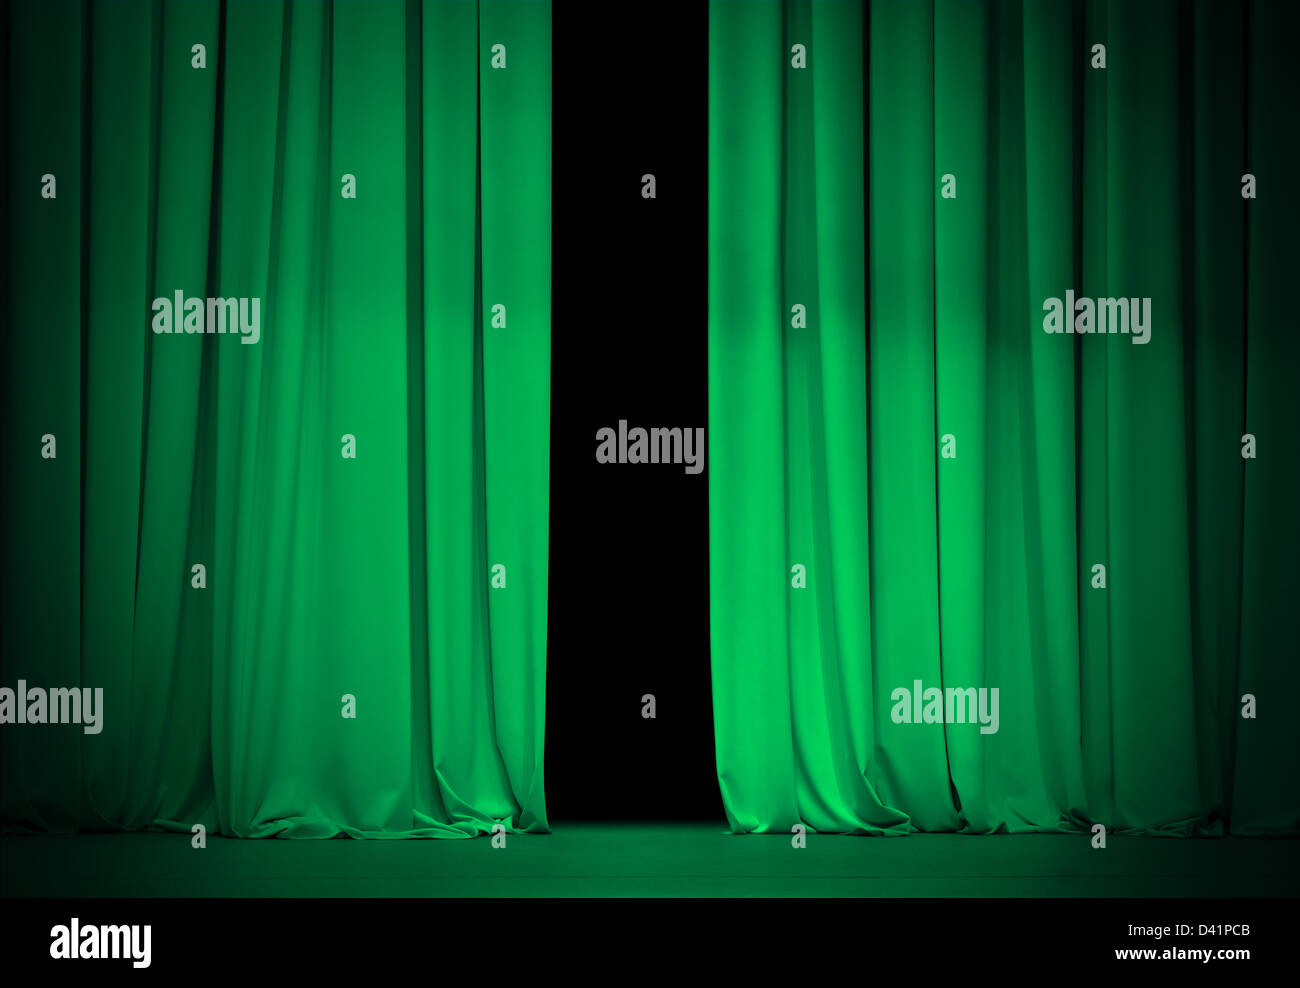 green or emerald curtain on theater or cinema stage slightly open - Stock Image